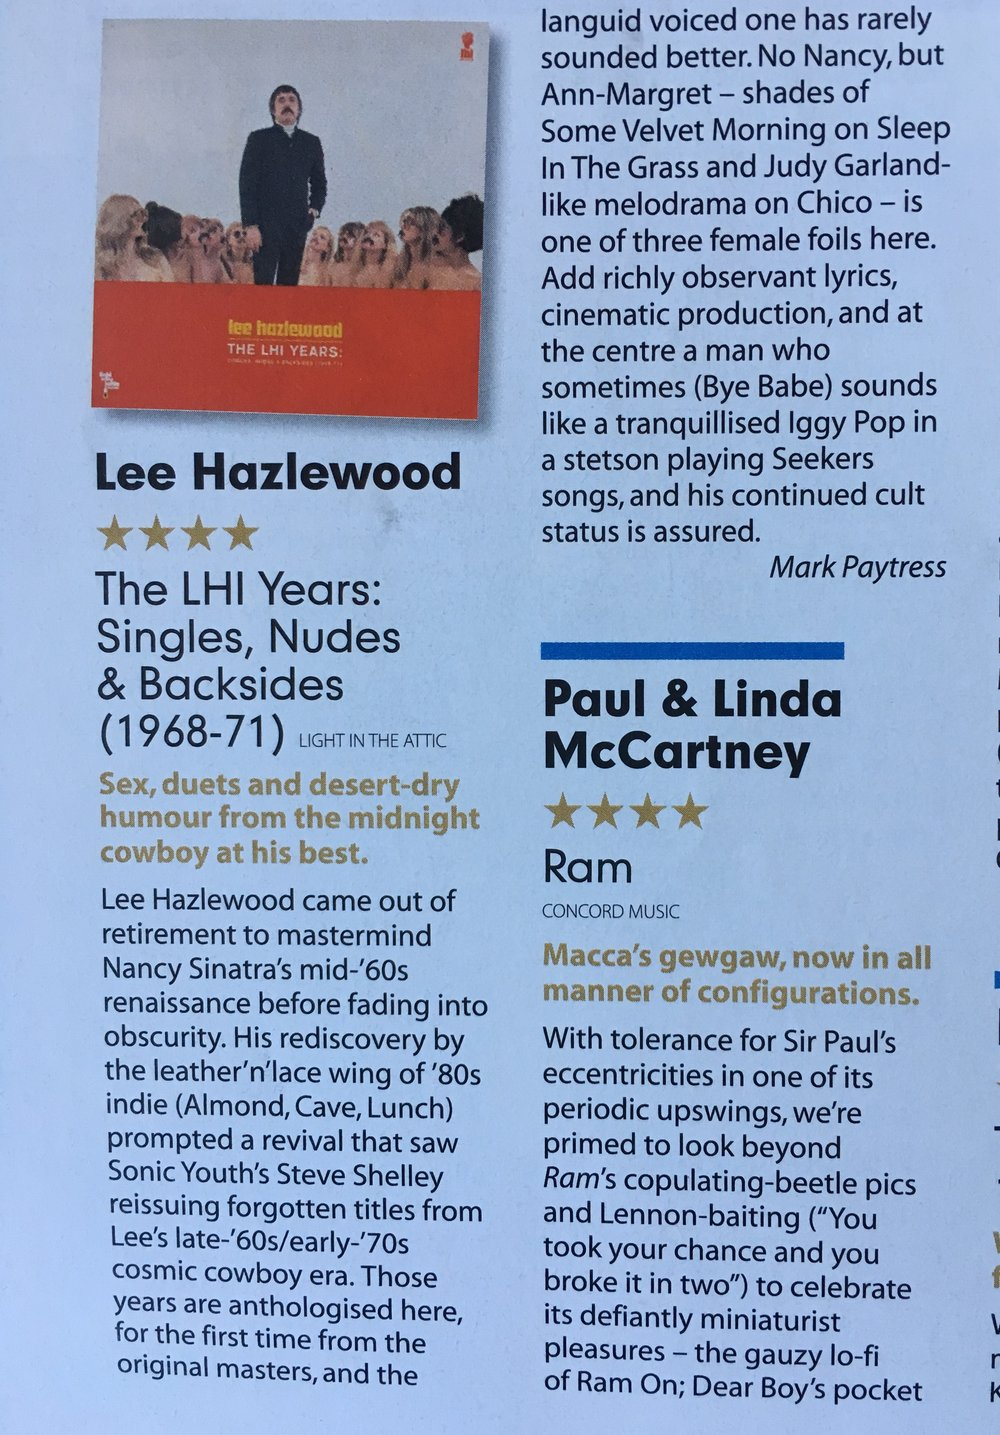 Lee Hazlewood The LHI Years: Singles, Nudes & Backsides (1968-71)  Mojo Magazine  #223 June 2012